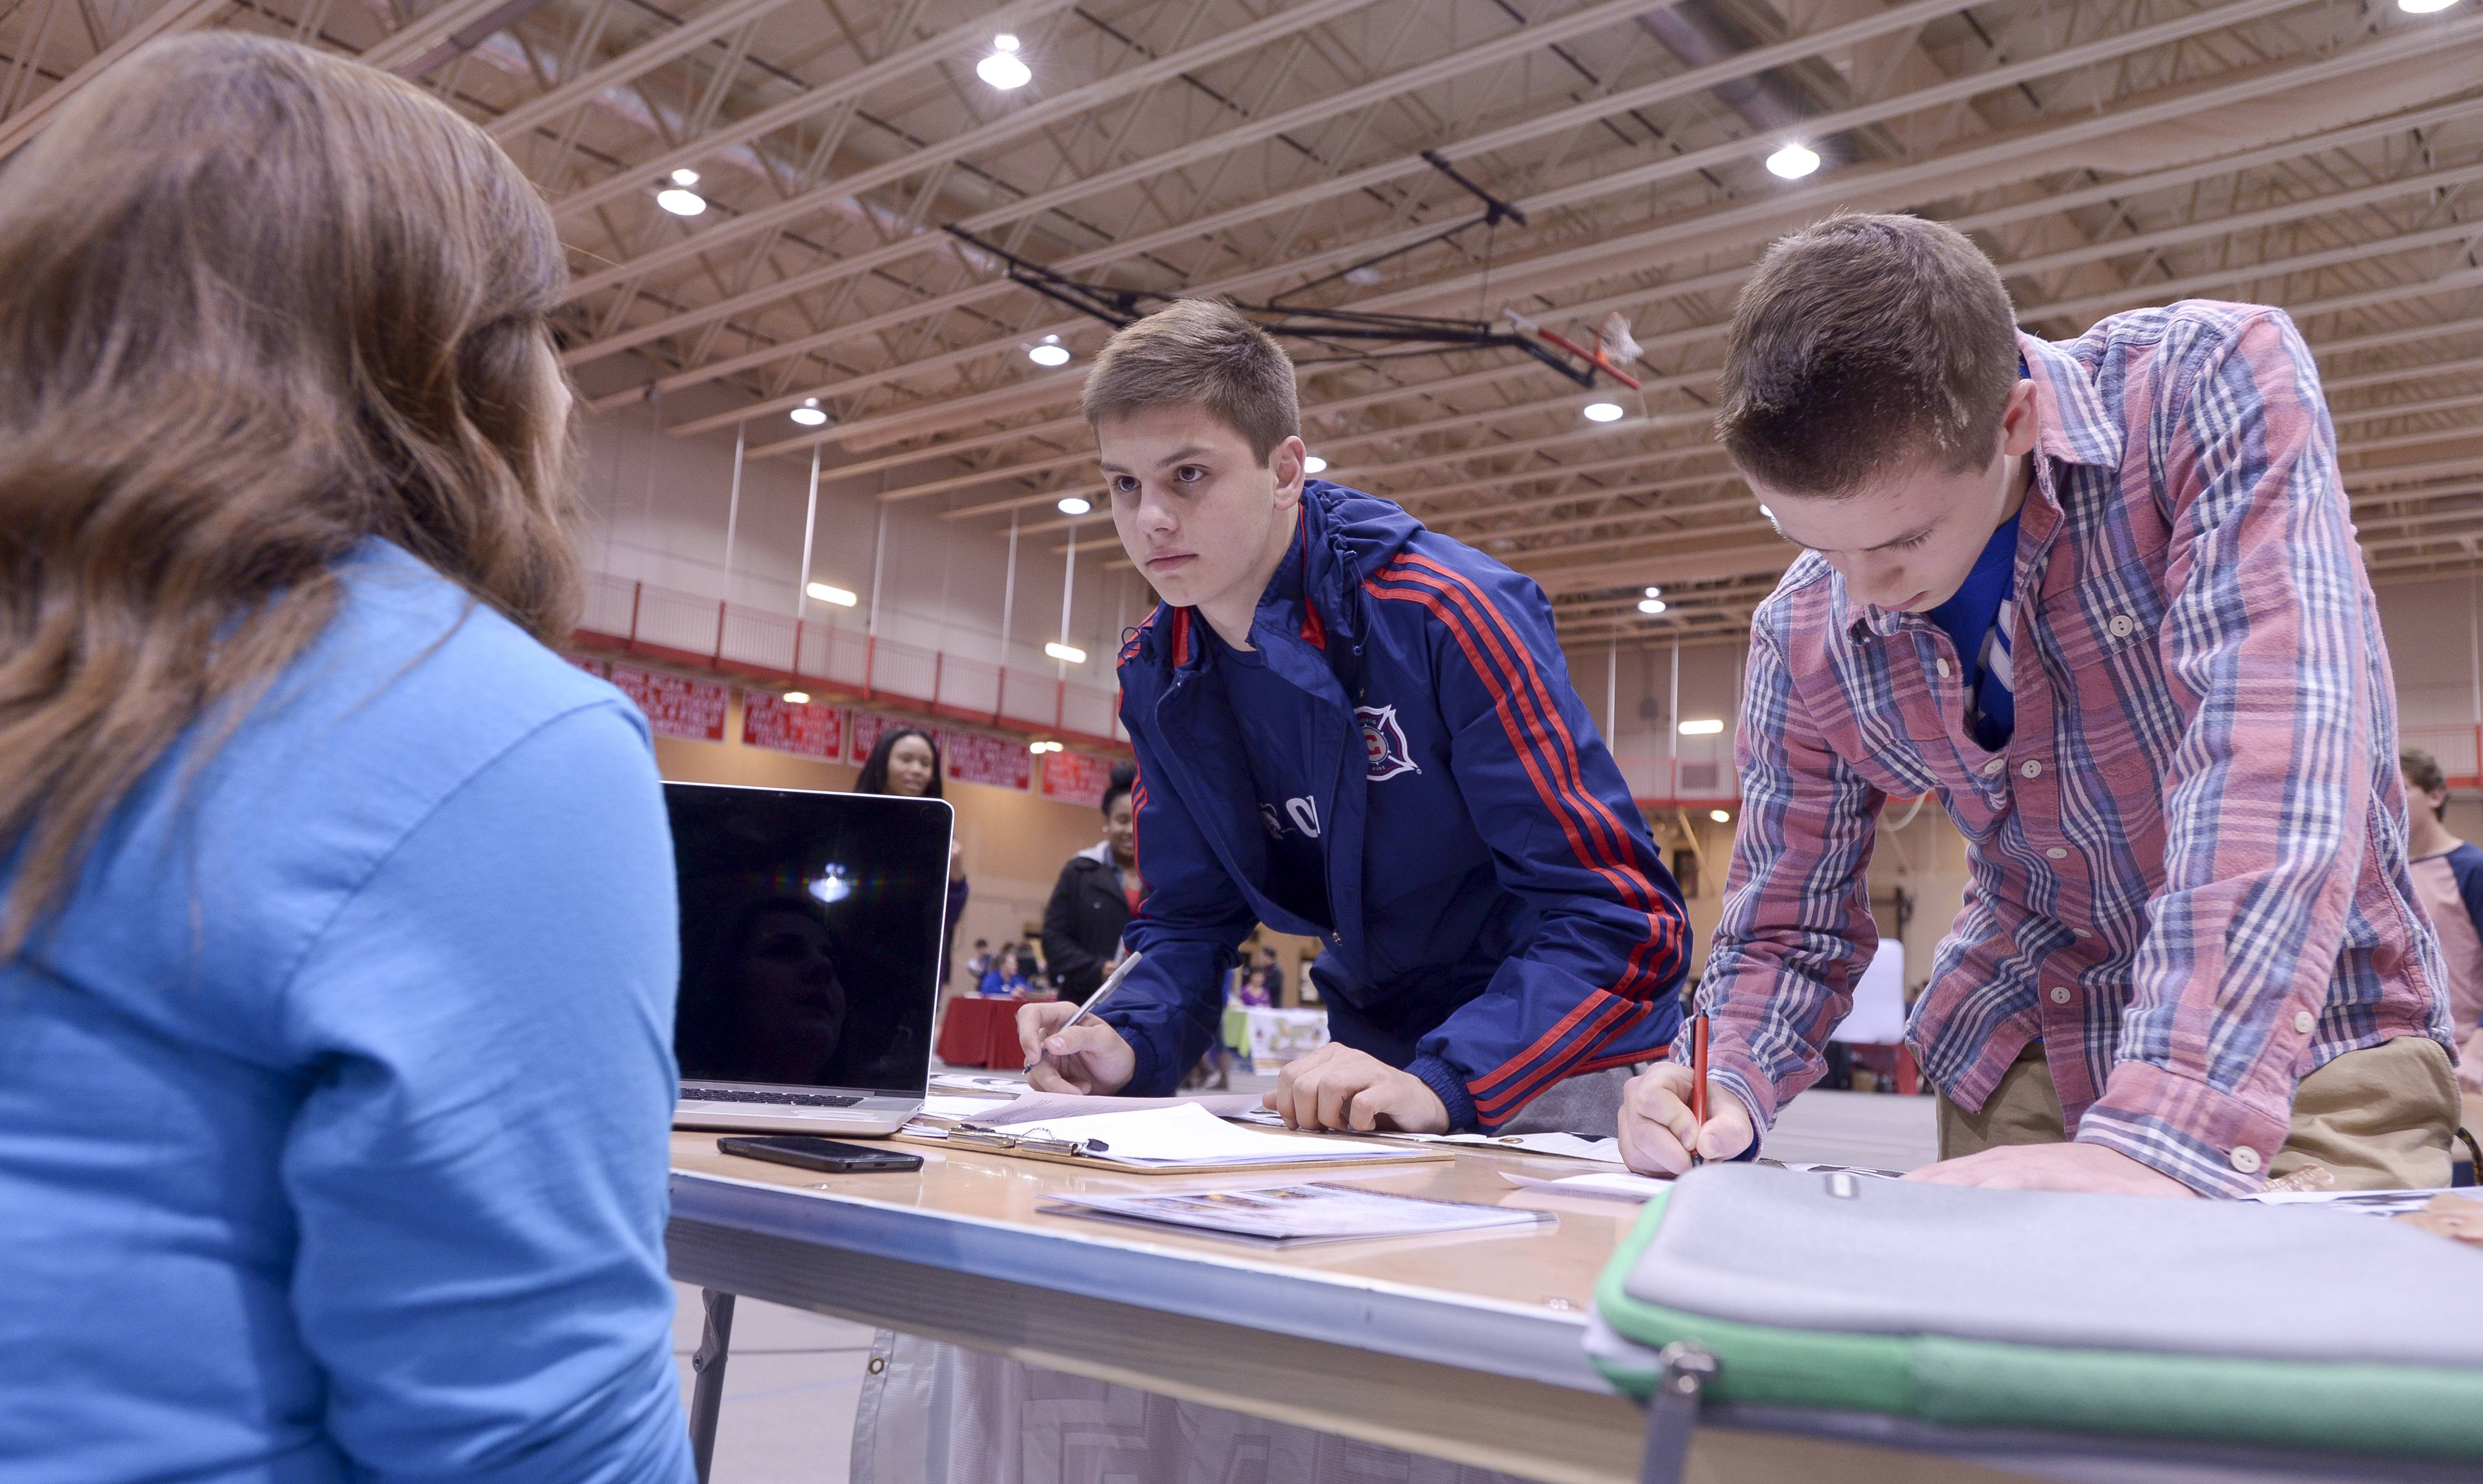 Becca Dolak, from Players Indoor Sports Center, talks with David Kovacevic, 16, of Naperville, and Breigs Pflibsen, 16, of Aurora, as they fill out applications during the 11th annual KidsMatter Student Job Fair at North Central College in Naperville. The job fair had 45 vendors.